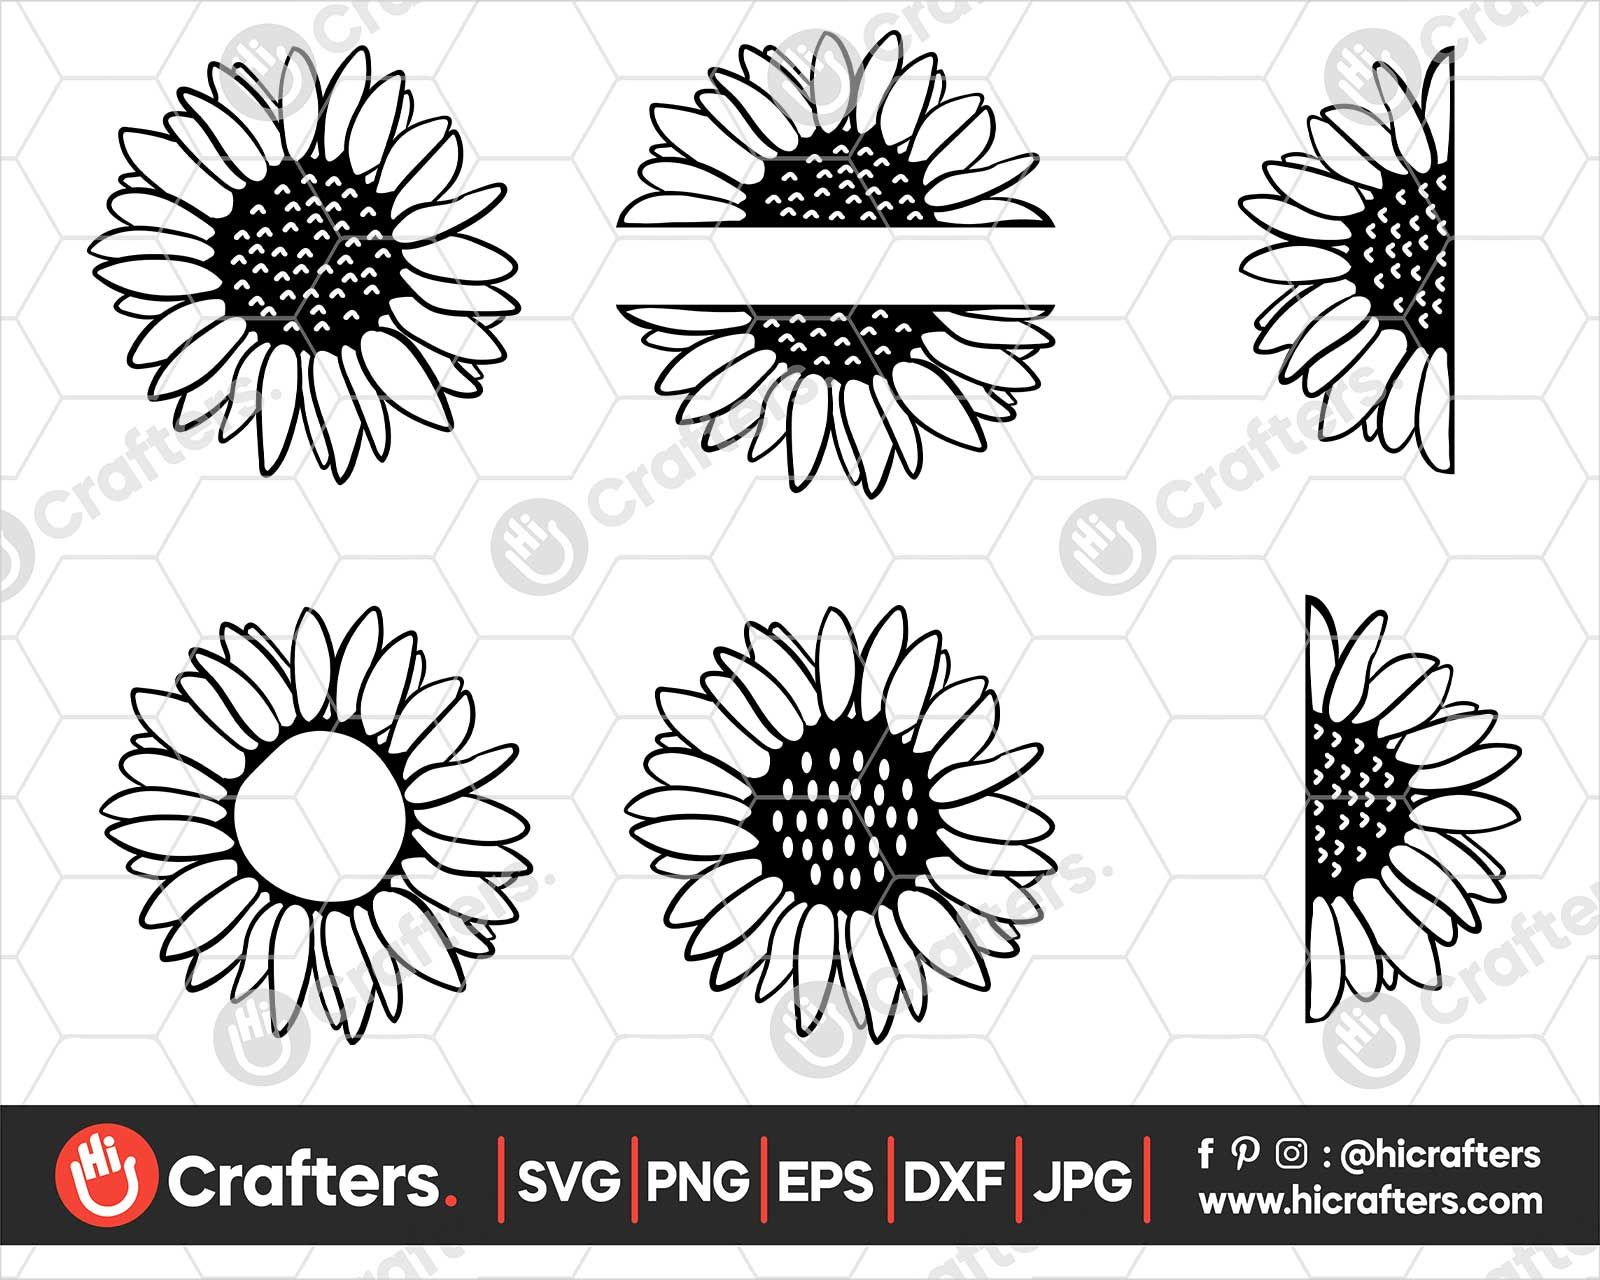 Sunflower SVG Bundle Half Sunflower SVG File in 2020